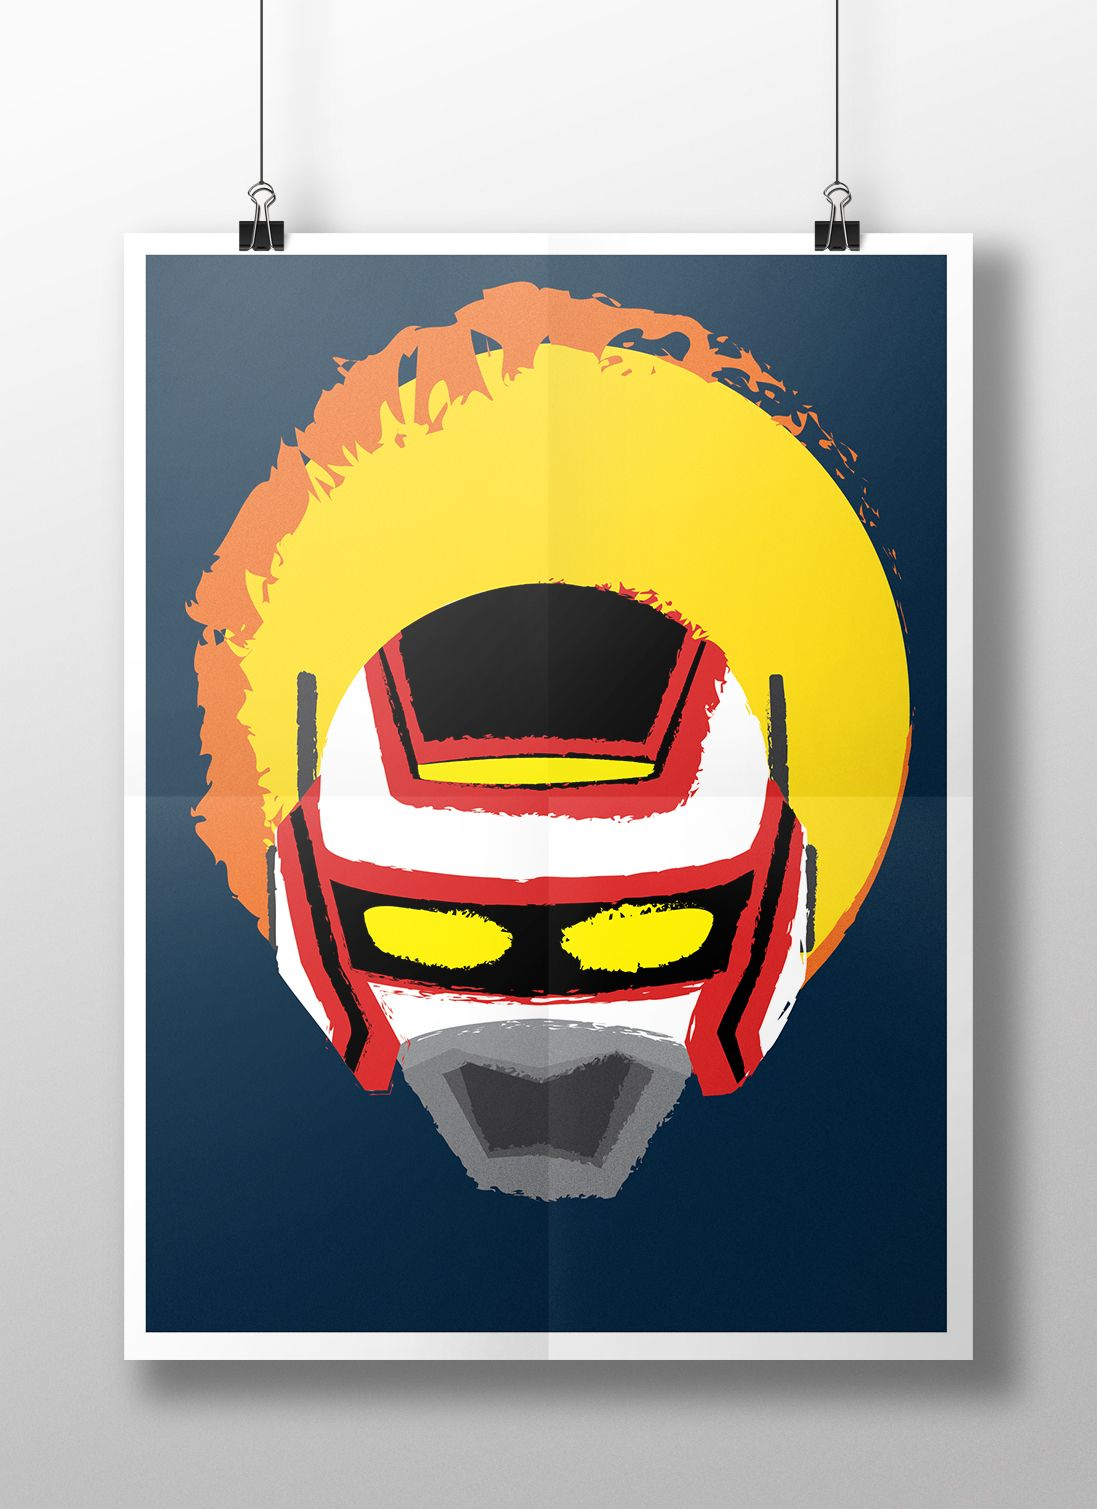 Juspion/Jaspion and Macgaren - T-shirts and posters on Behance